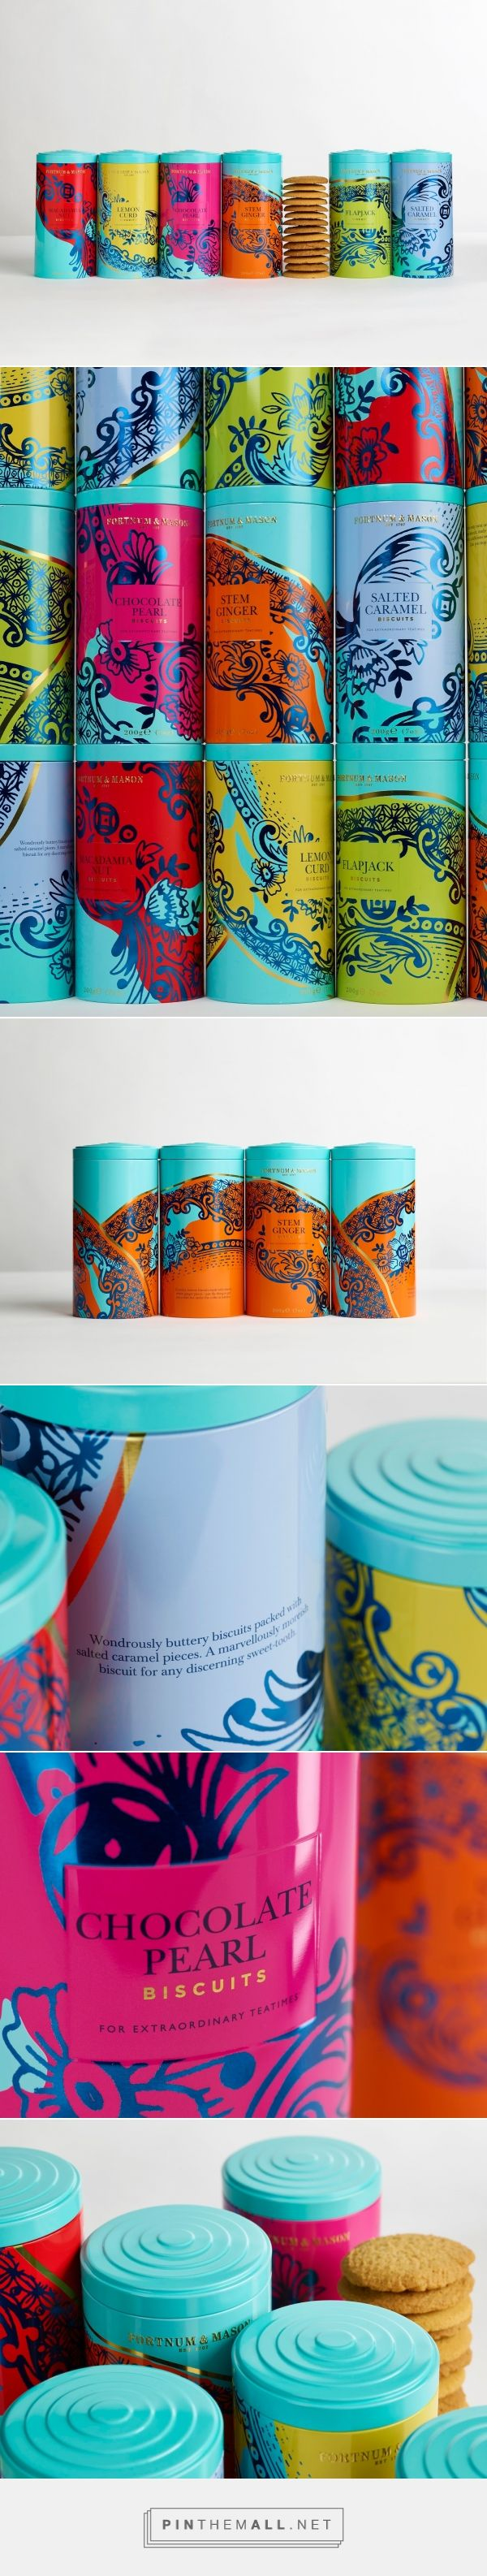 Fortnum & Mason's Biscuits Redesigned - Packaging of the World - Creative Package Design Gallery - http://www.packagingoftheworld.com/2017/05/fortnum-masons-biscuits-redesigned.html